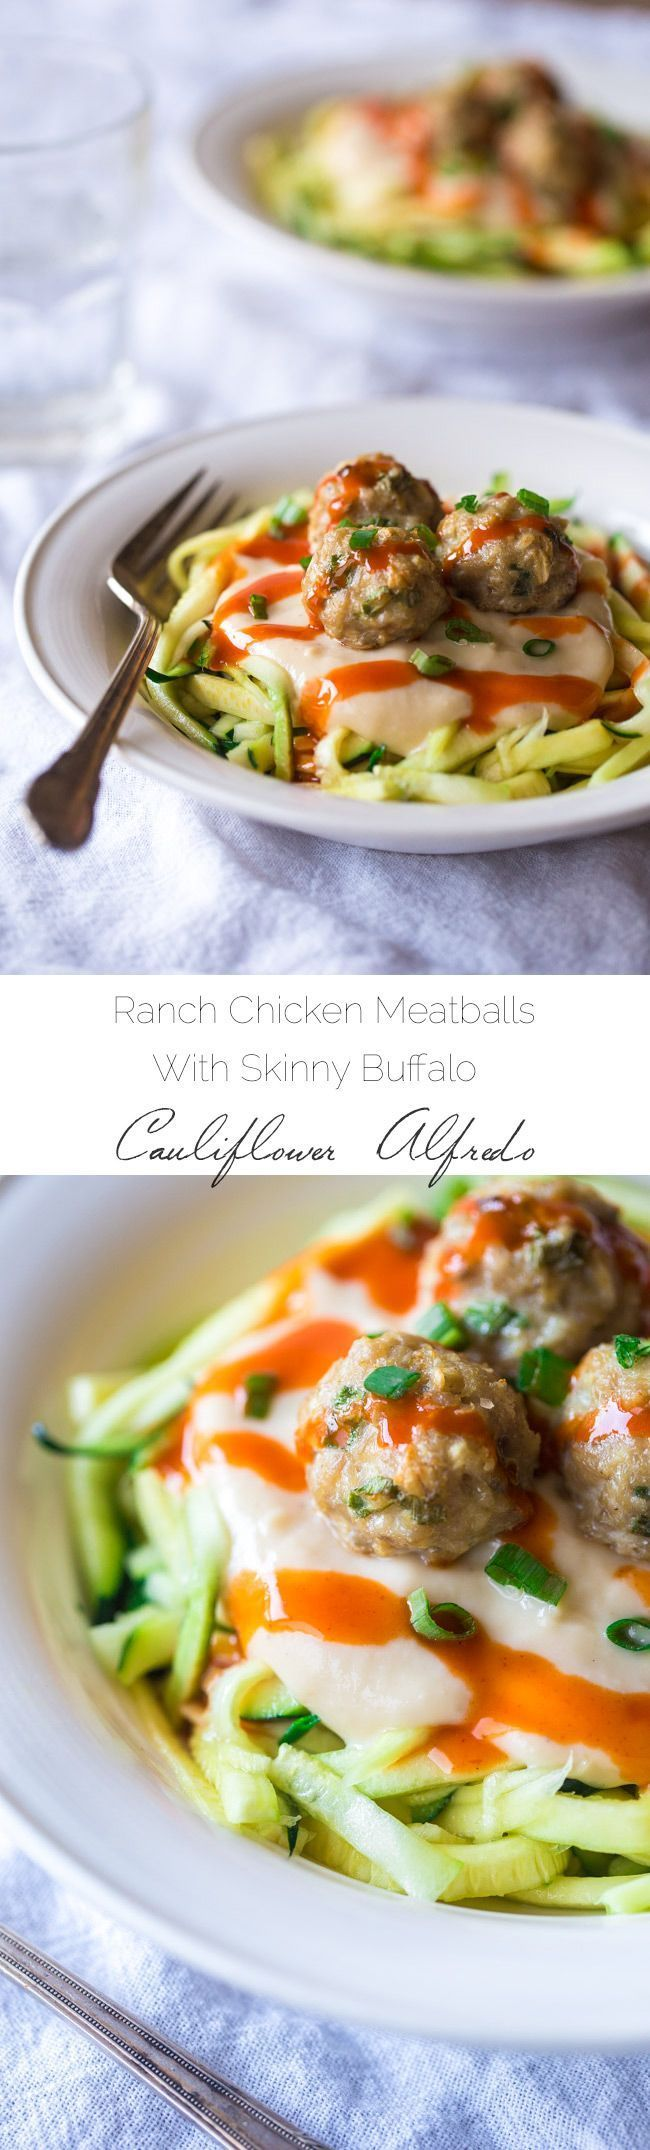 Buffalo Chicken Meatballs with Skinny Buffalo Cauliflower Alfredo - A Dinner perfect for Game Day that is SO healthy and easy! You would never know it's gluten free, low carb and PACKED with protein!    Foodfaithfitness.com   @FoodFaithFit